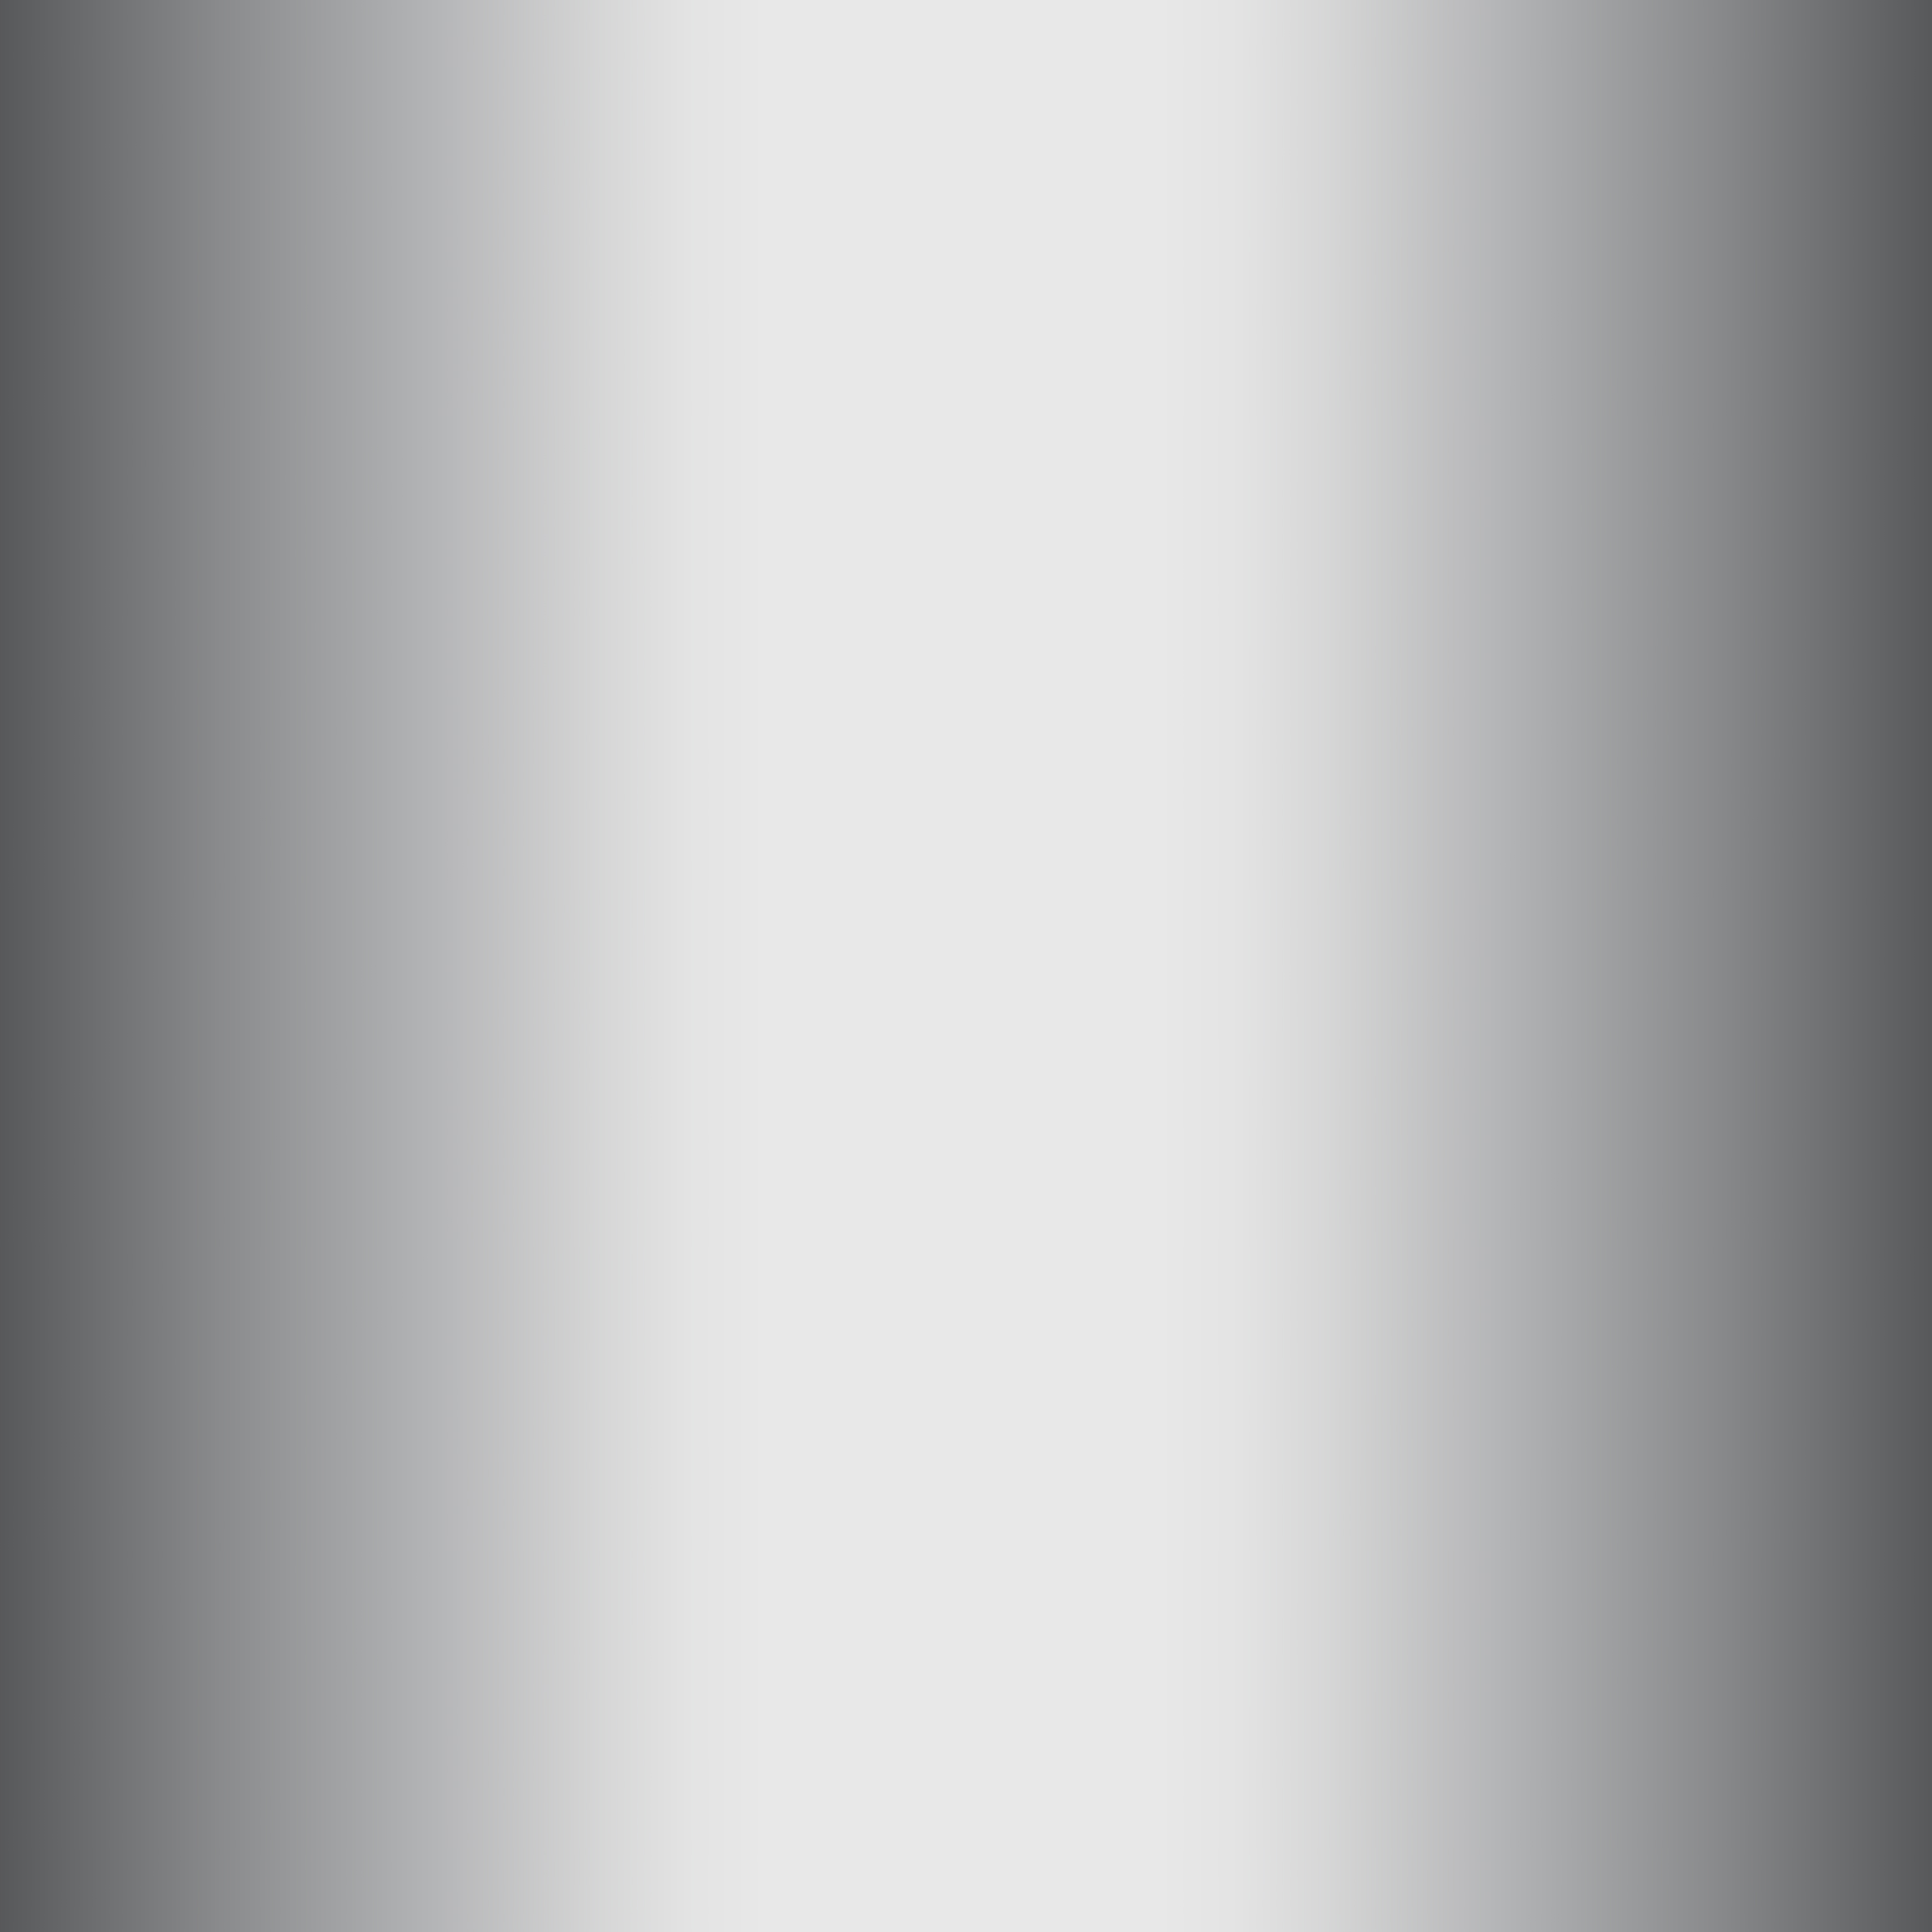 Blurred silver effect holographic gradient background example image 11